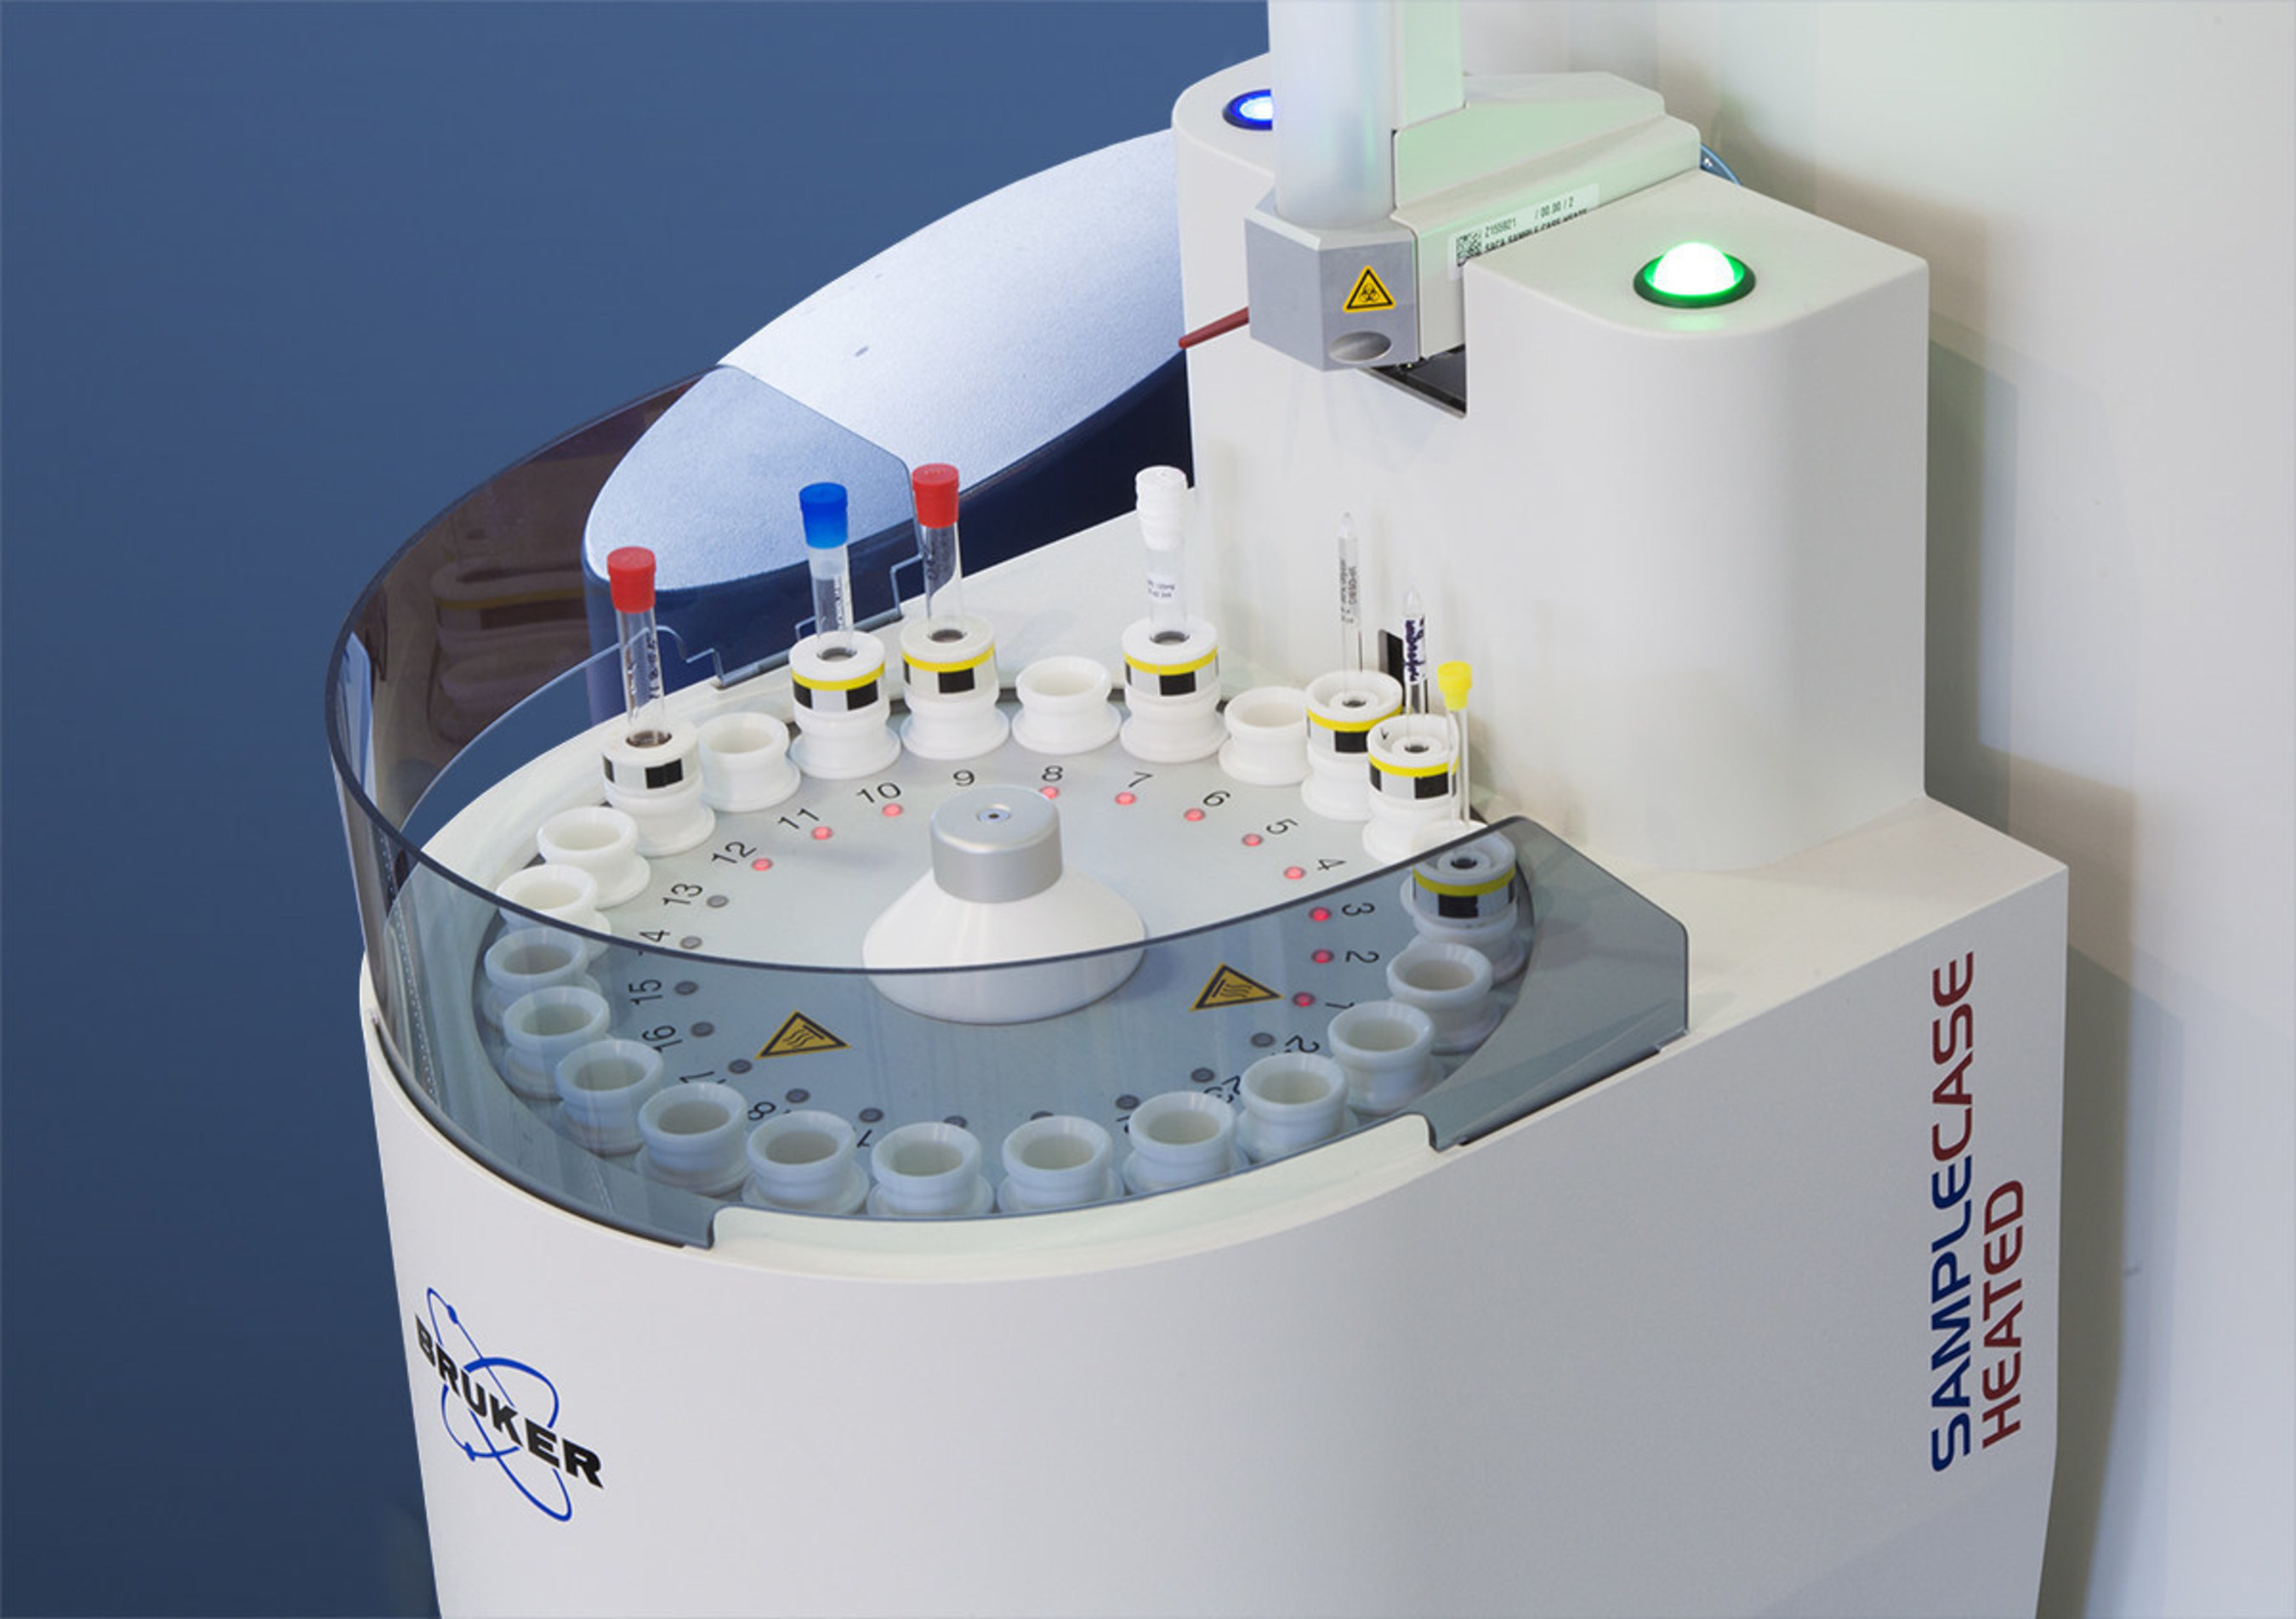 Bruker Announces High Performance And Cost Effective Nmr Solutions For The Pharmaceutical And Chemical Industries